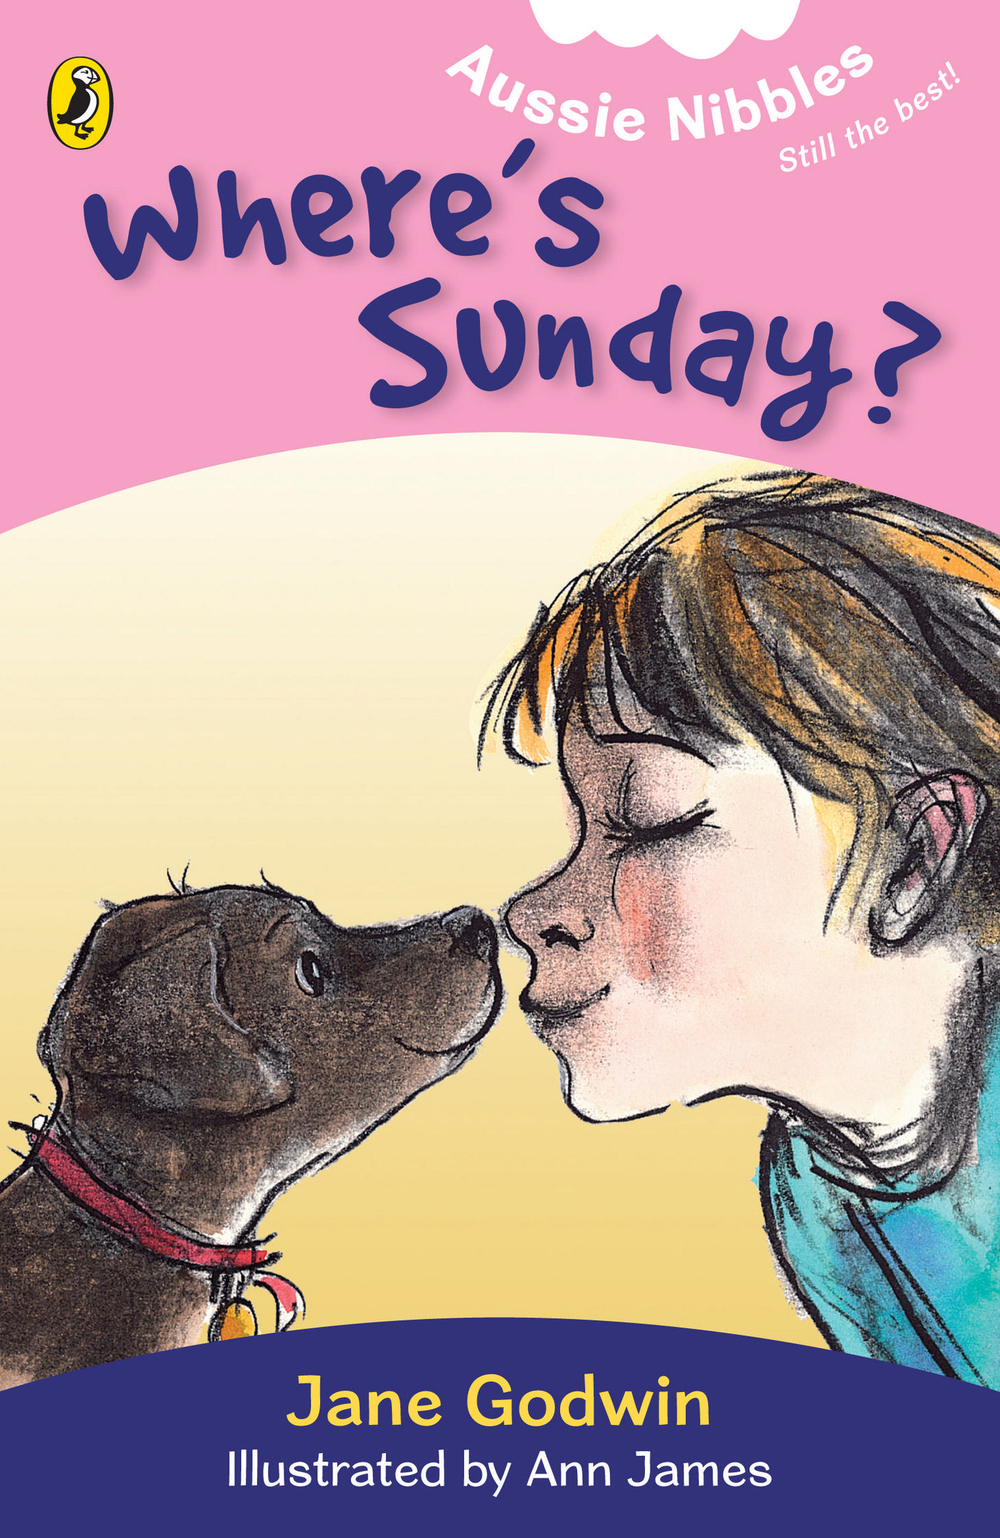 Where's Sunday?  (illustrated by Ann James)  2010